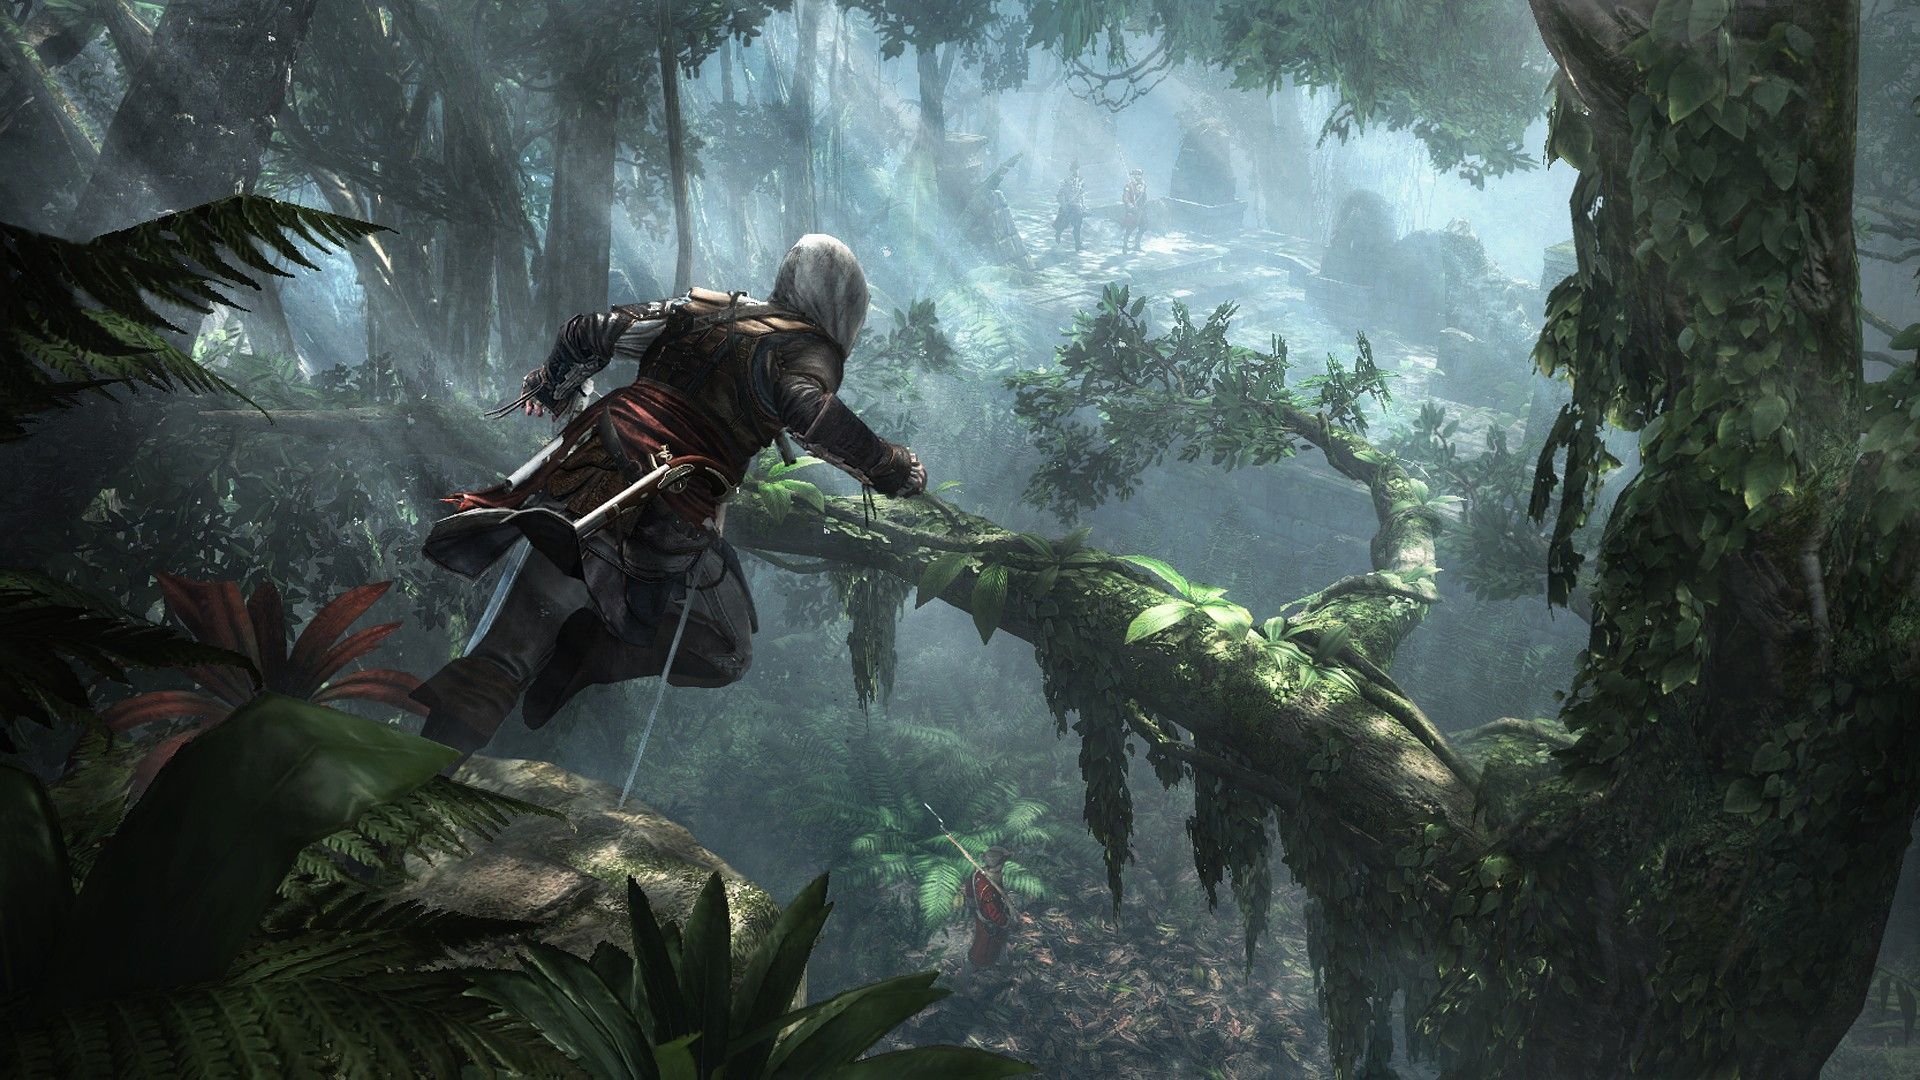 Assassins Creed Black Flag In 2020 Assassin S Creed Wallpaper Assassin S Creed Hd Assassins Creed 4